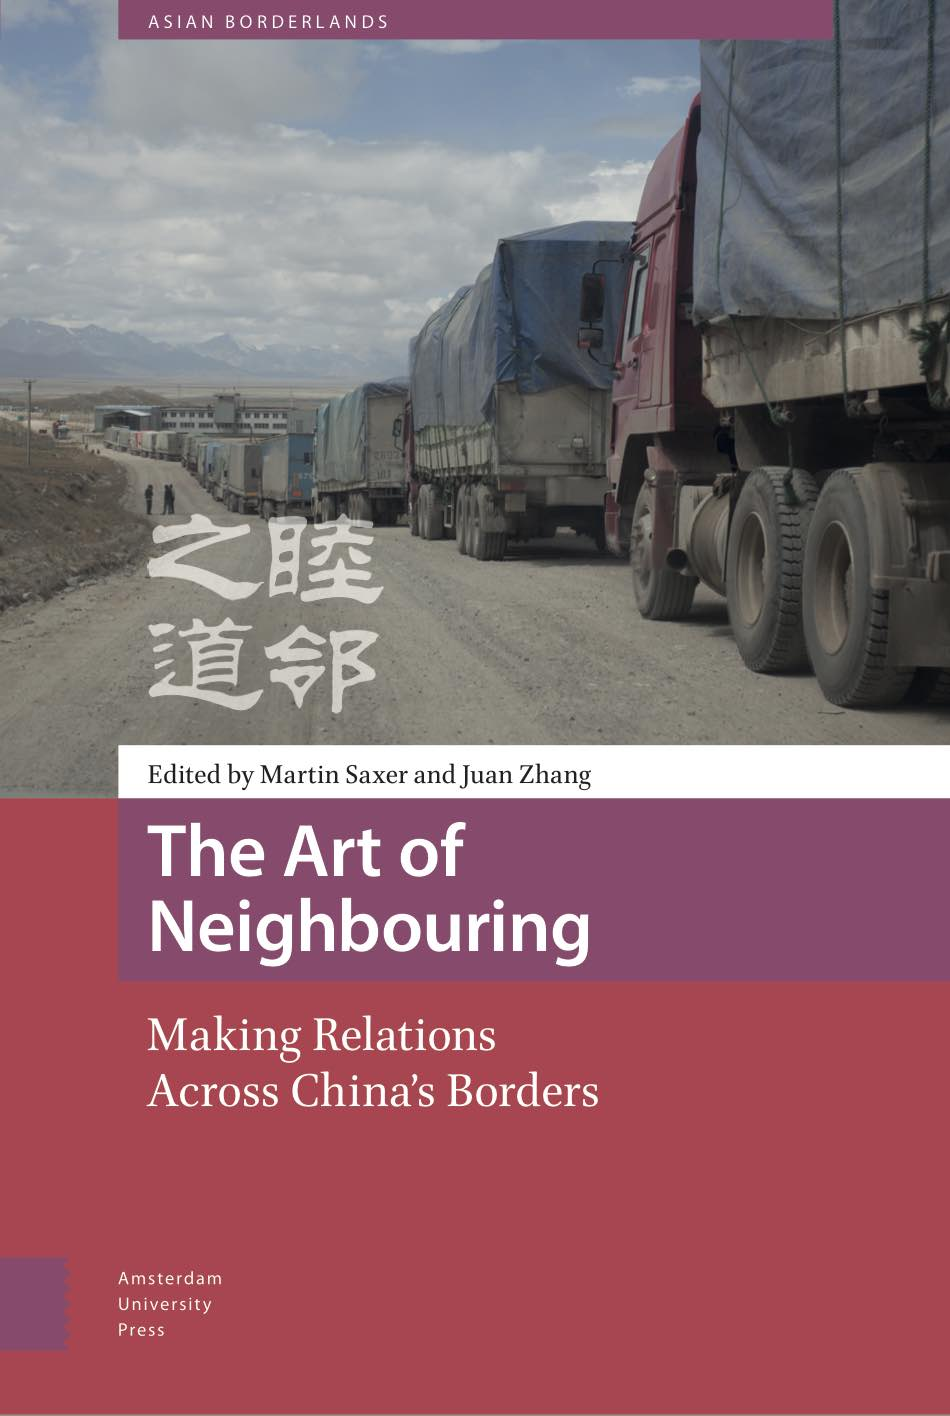 Saxer, Martin and Juan Zhang. 2016. The Art of Neighbouring: Making Relations Across Chinese Borders. Amsterdam, Amsterdam University Press.